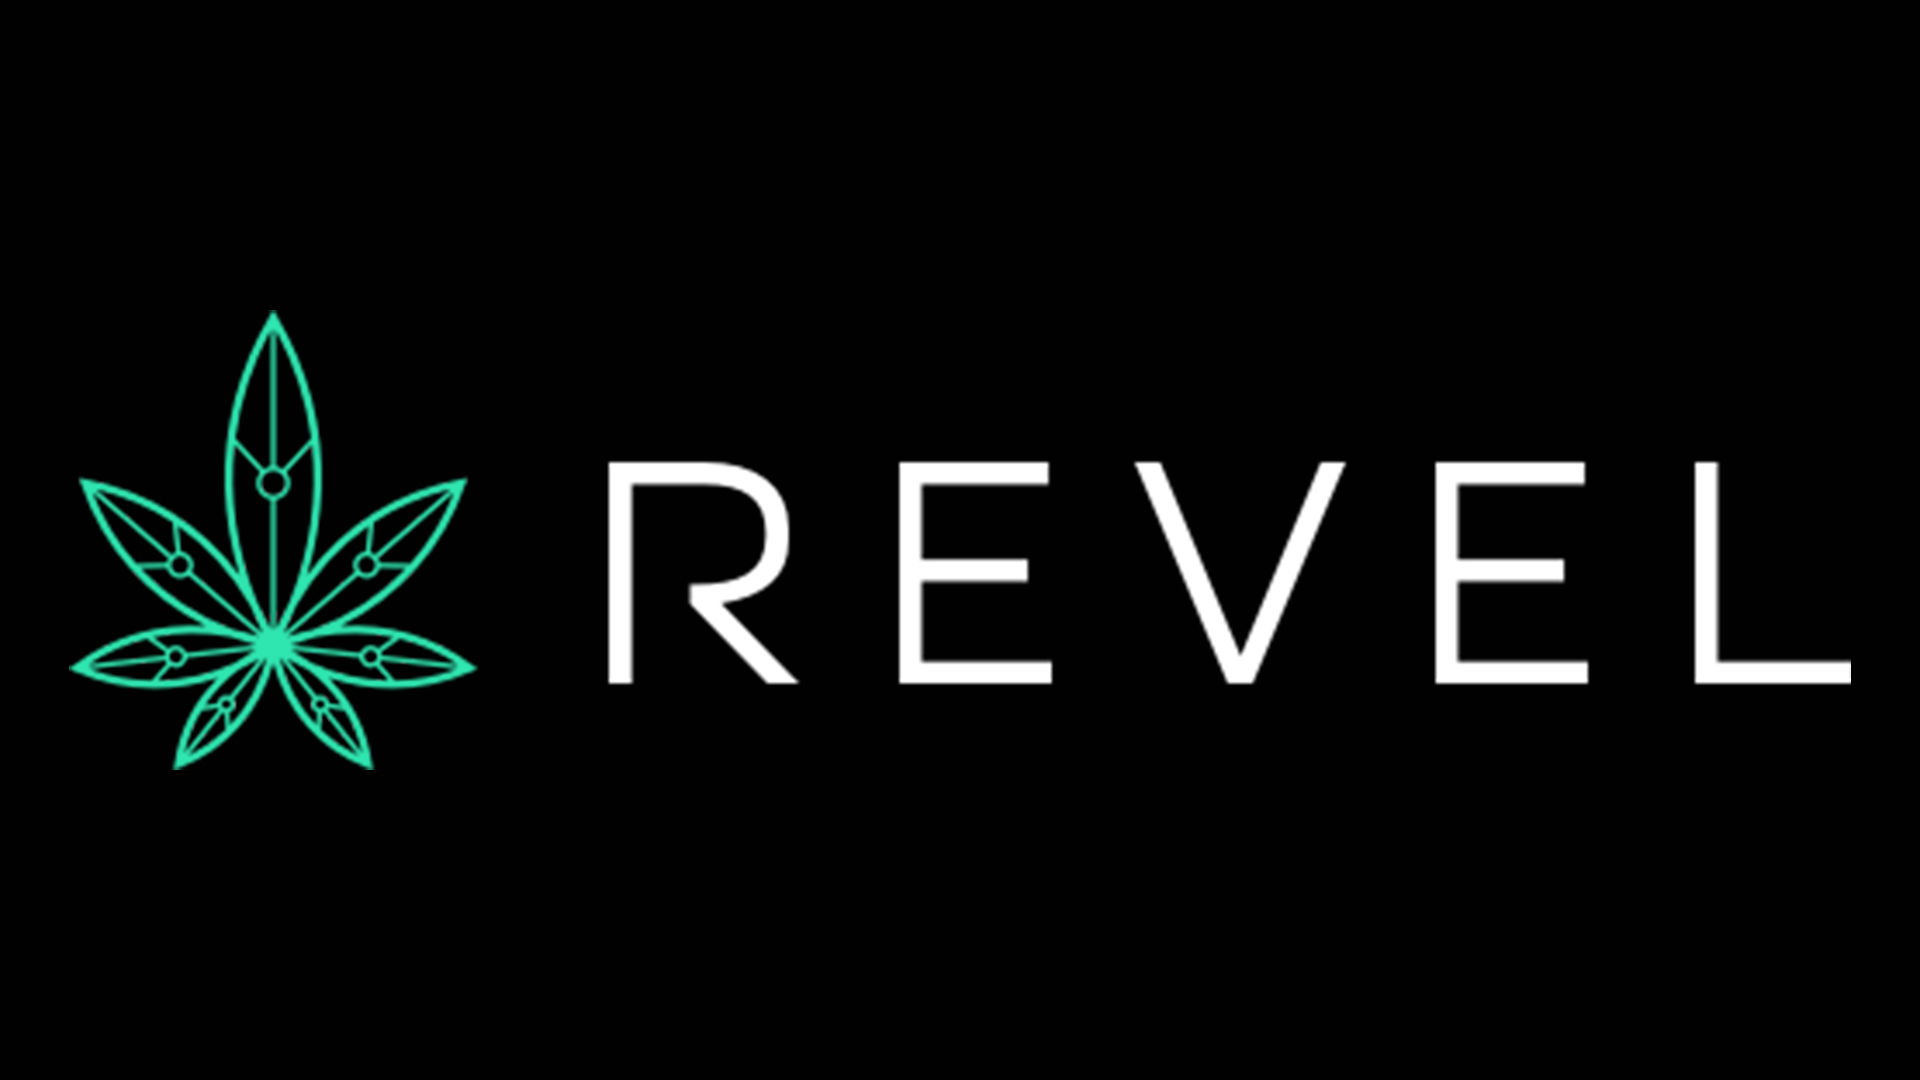 Revel's event recap